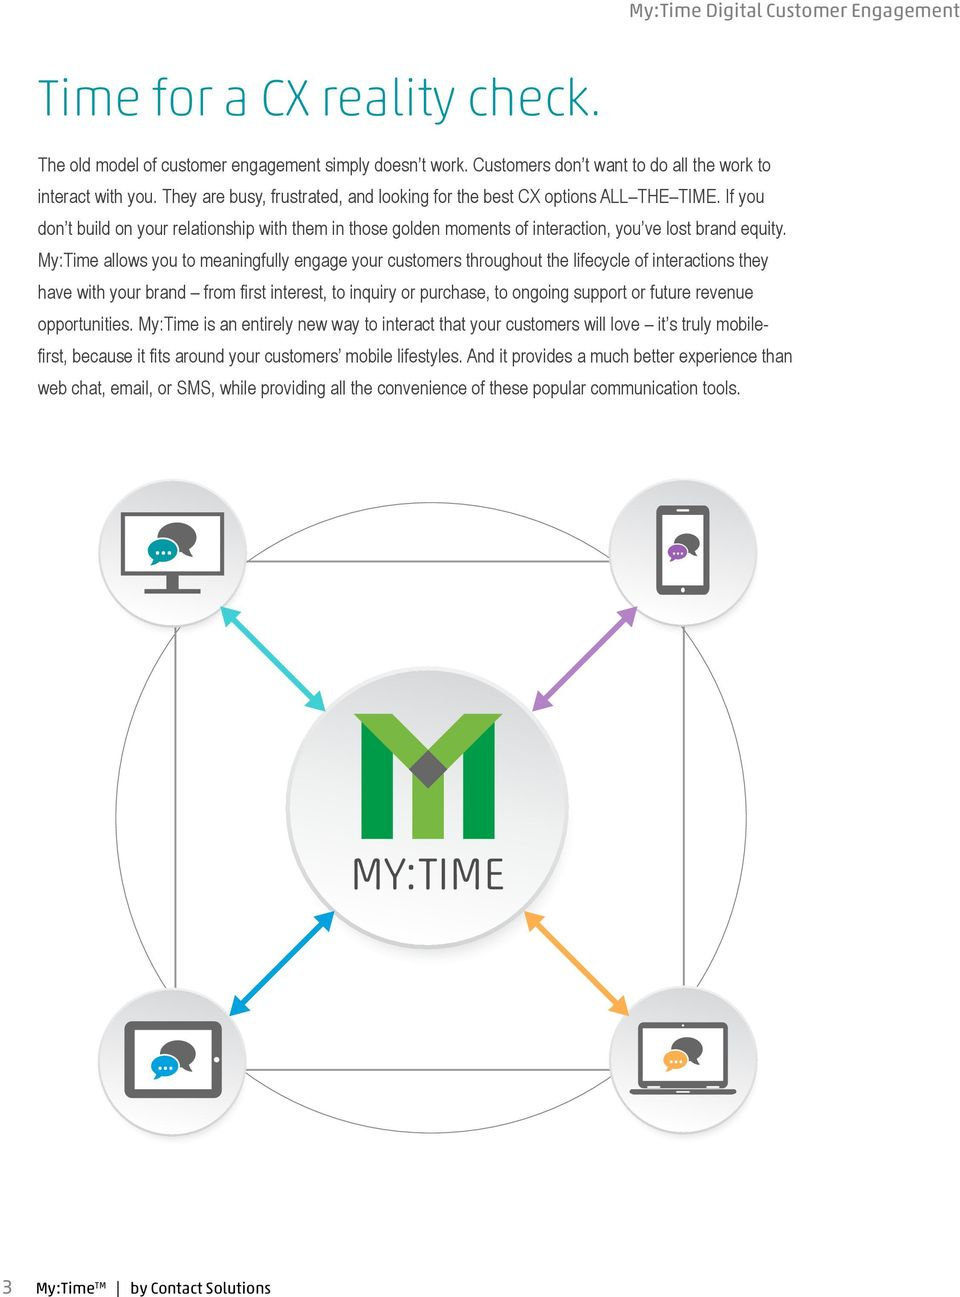 My:Time allows you to meaningfully engage your customers throughout the lifecycle of interactions they have with your brand from first interest, to inquiry or purchase, to ongoing support or future